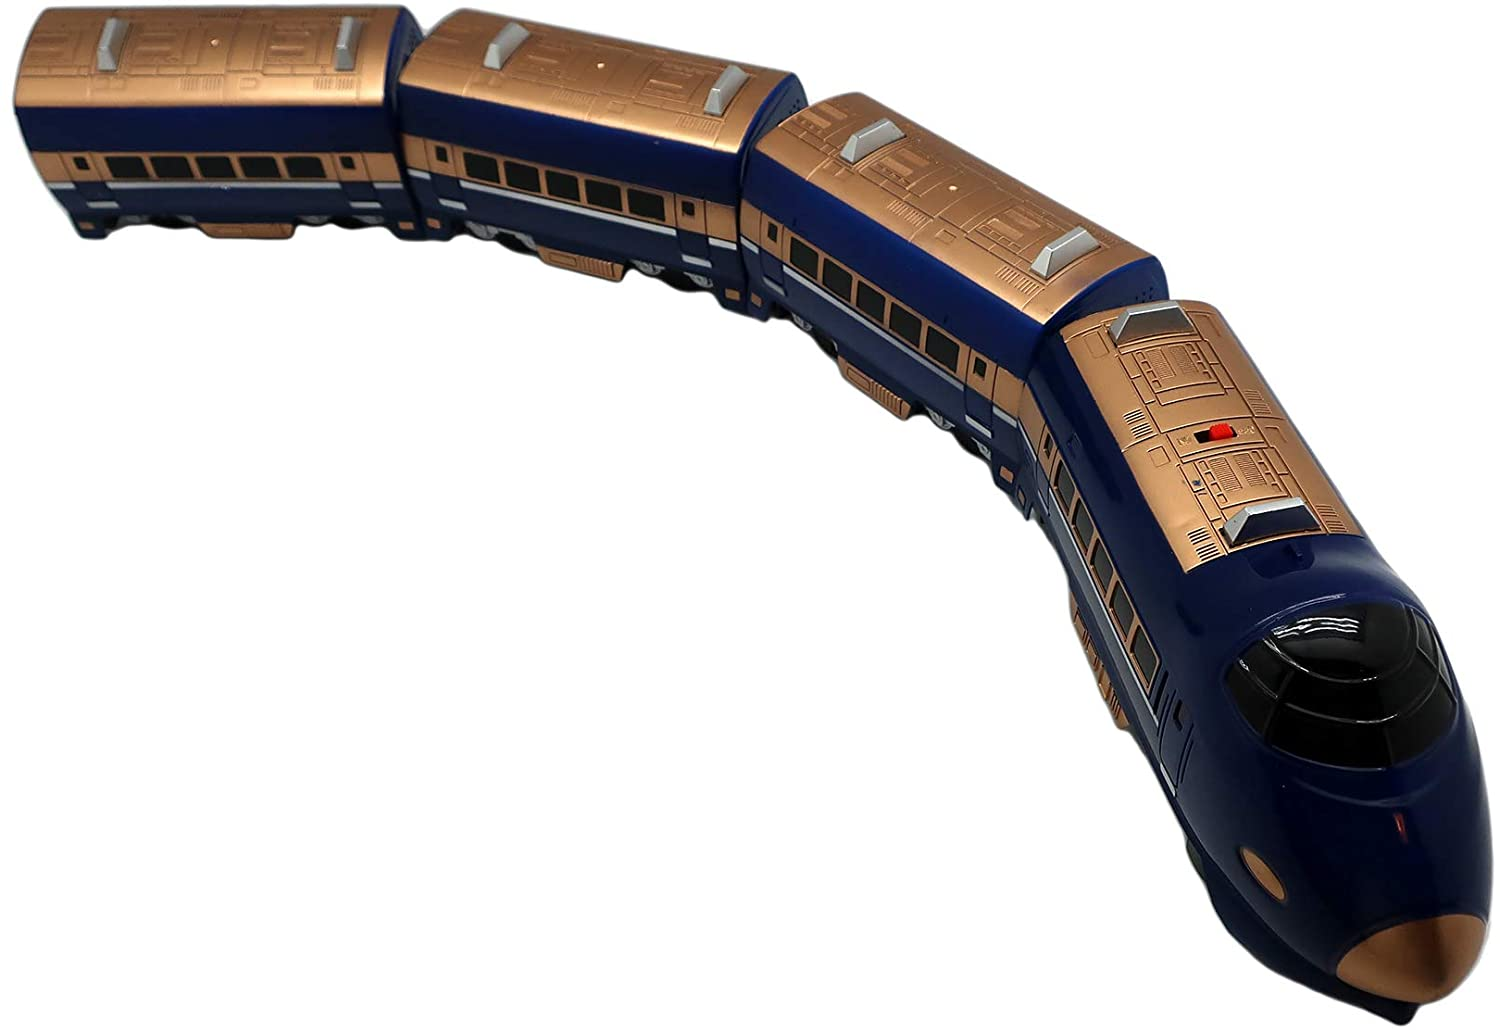 Forest & Twelfth Kids Super 757 Passenger Express Toy Train Bump N' Go Toy Model Train with Realistic Sounds (Blue)